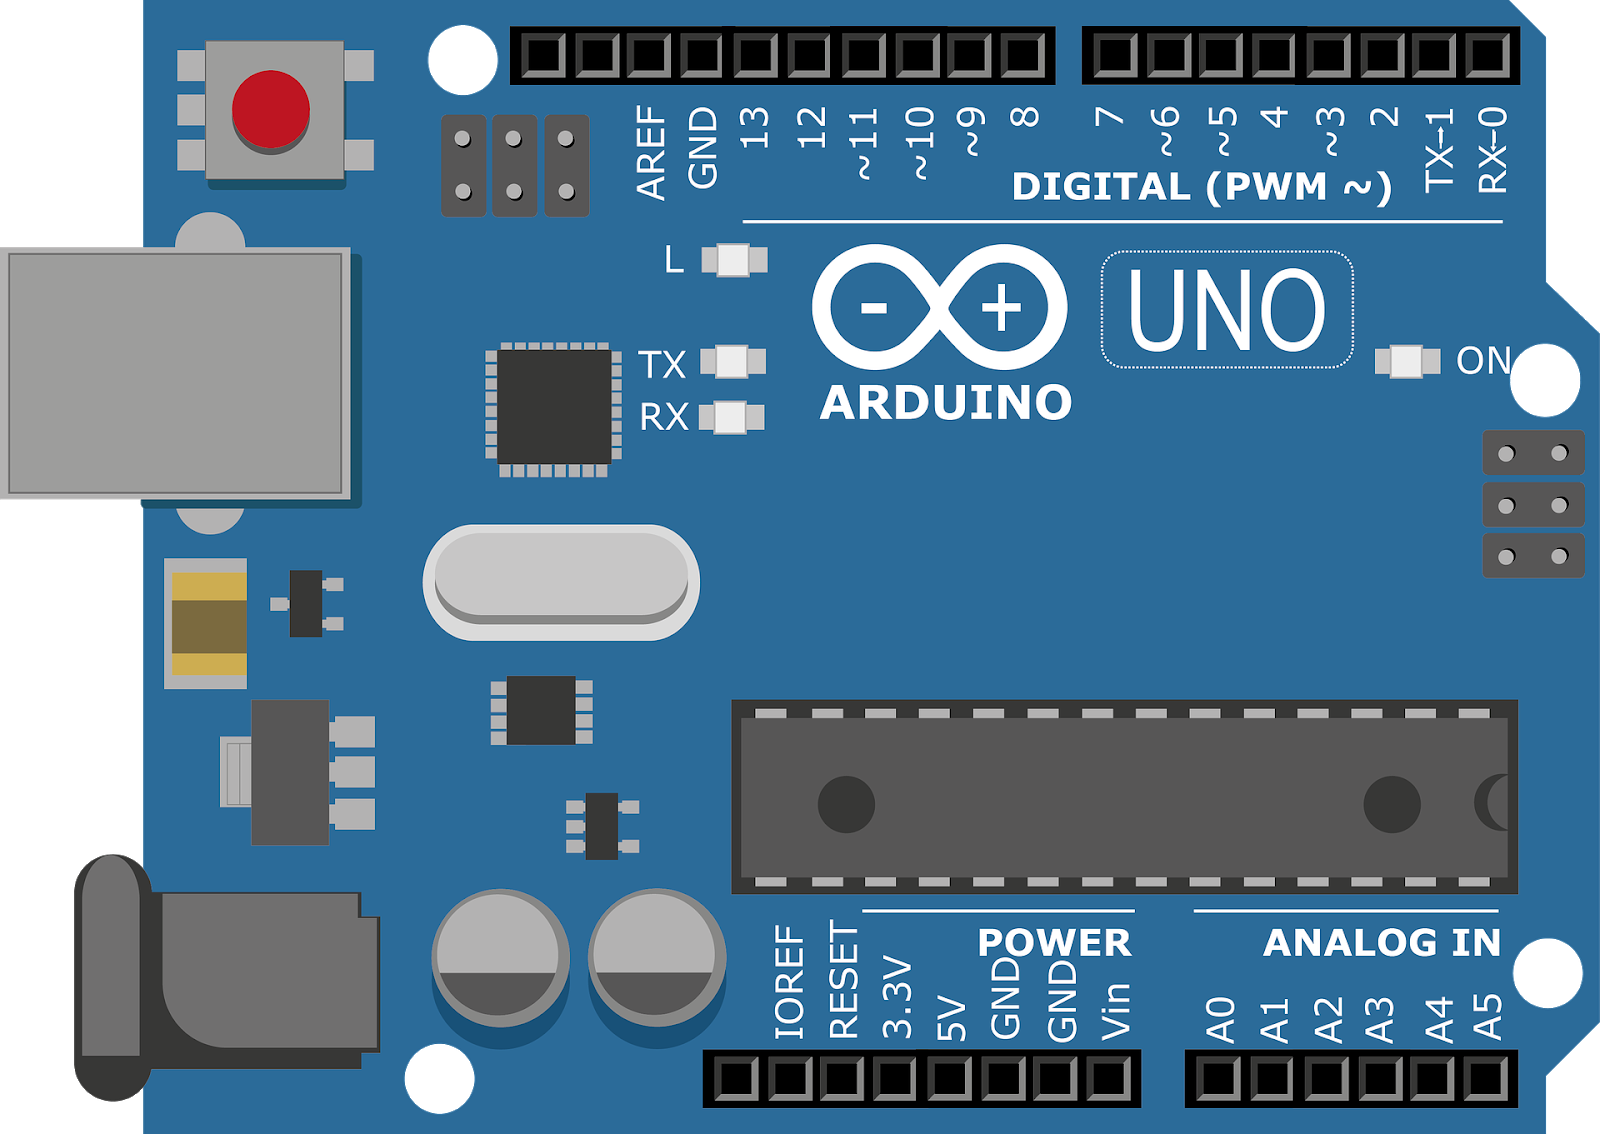 A to z blogs for you arduino micro controlling your mundane recently i was watching diy or do it yourself video on youtube about controlling the lights at home the project involves something called microcontroller solutioingenieria Choice Image